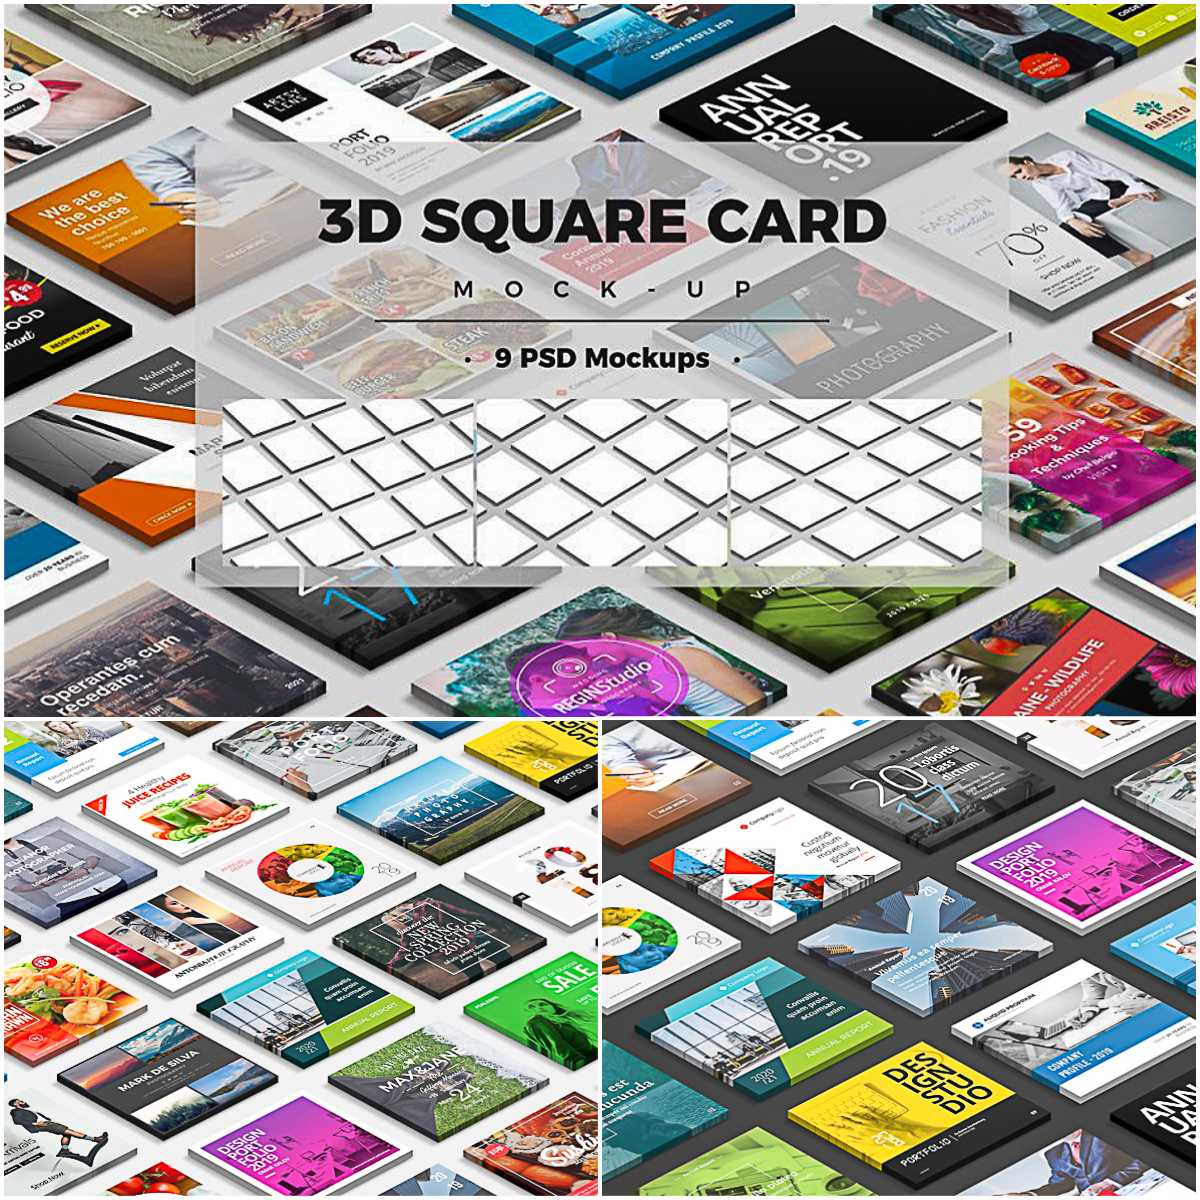 3D Square Card Mock-up | Free download